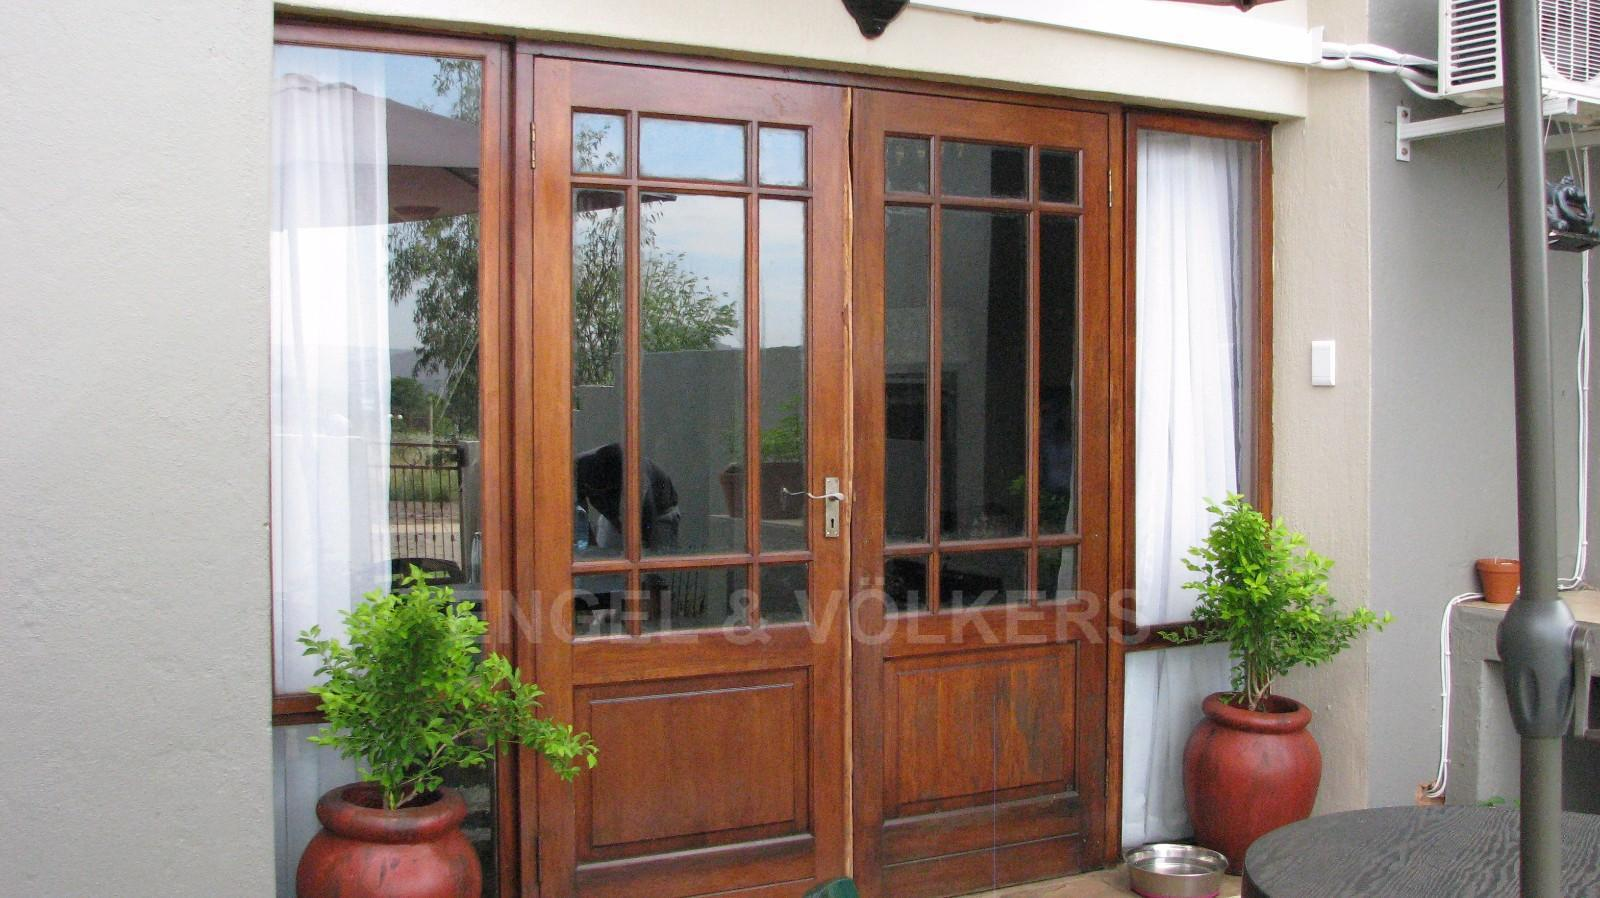 House in Melodie - Double wooden doors opening up onto enclosed garden